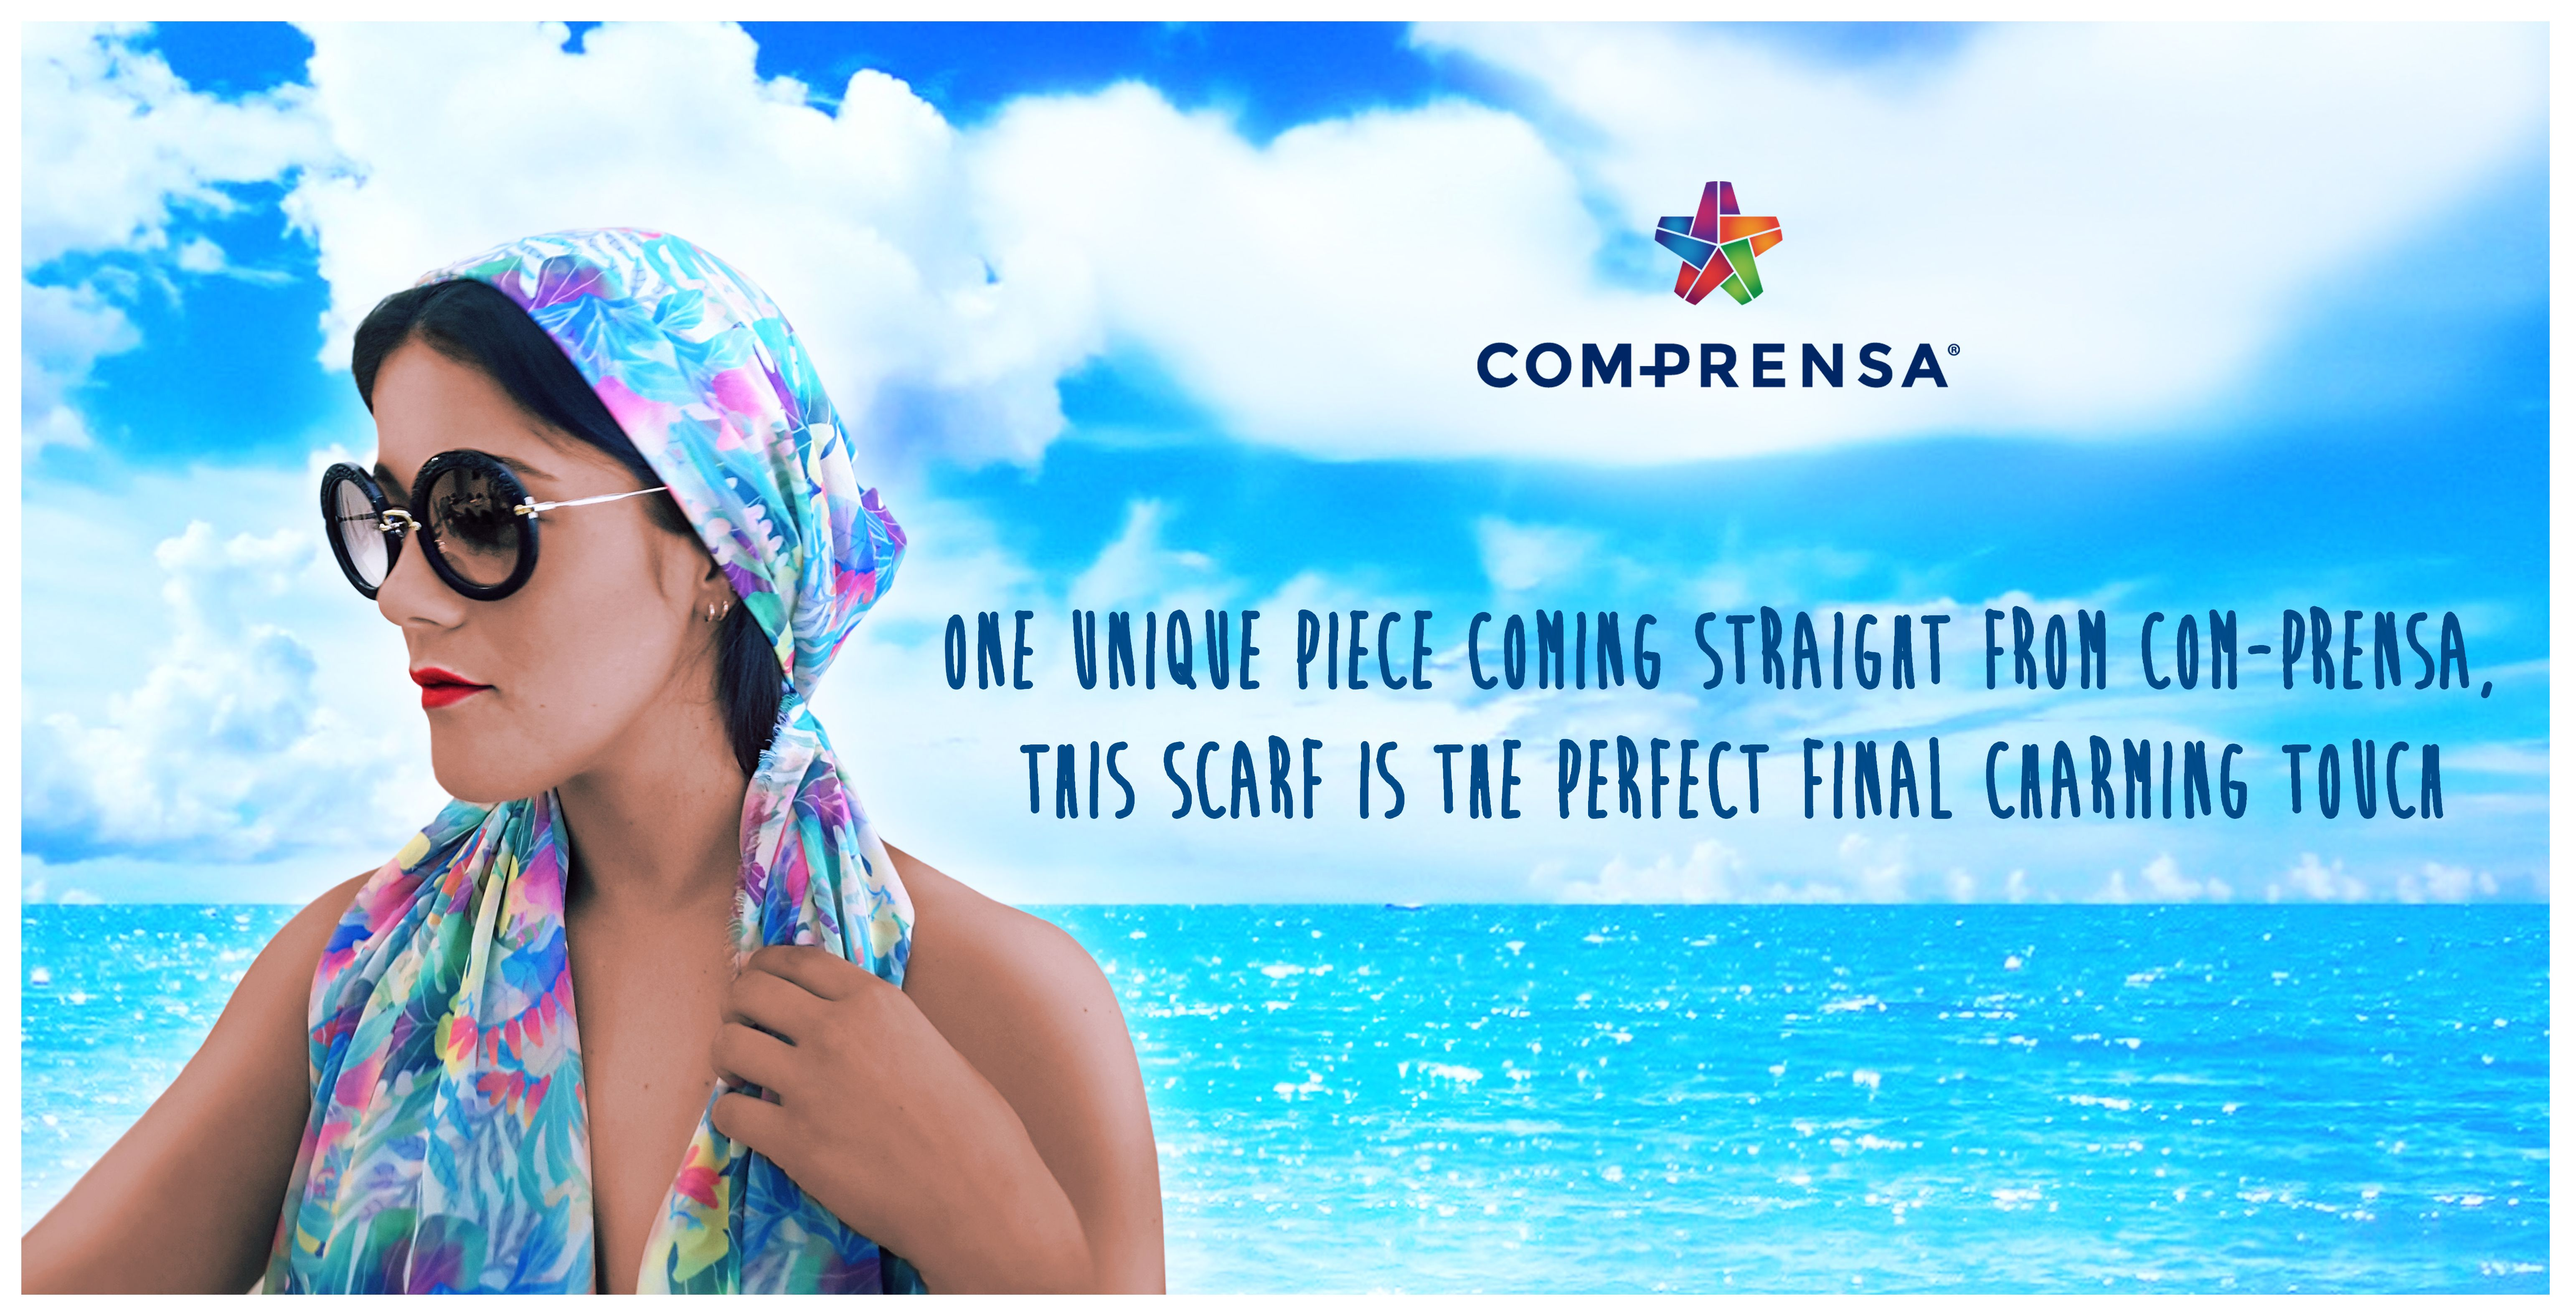 One unique piece coming straight from Com-Prensa, this scarf is the perfect final charming touch